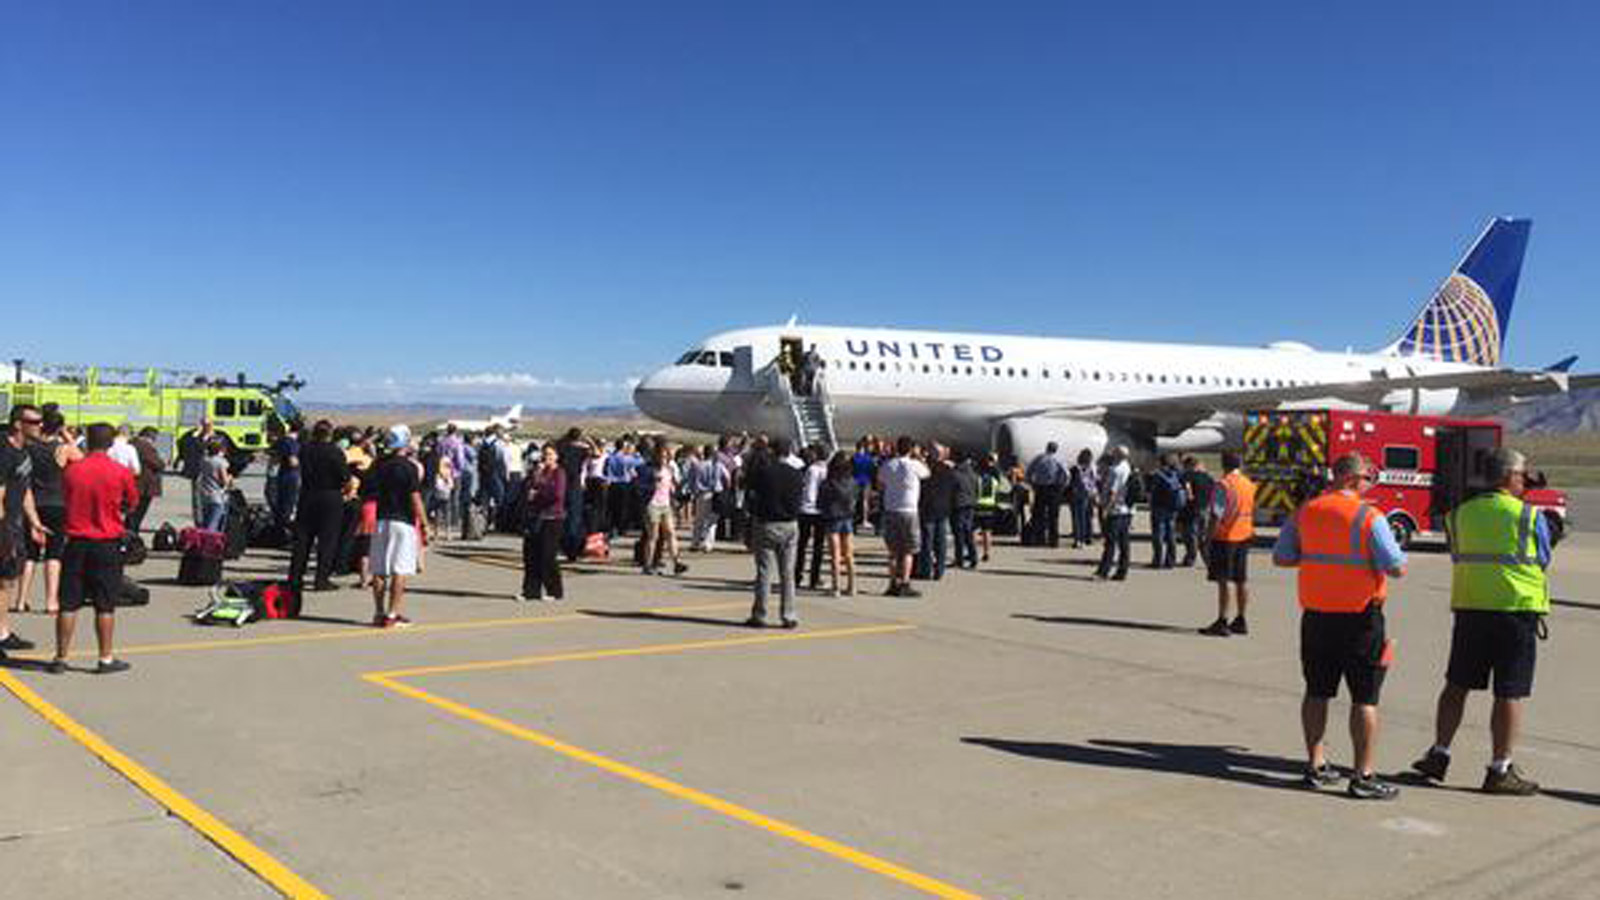 A United Airlines plane from Denver to L.A. made an emergency landing in Grand Junction (credit: Grand Junction Fire Dept.)